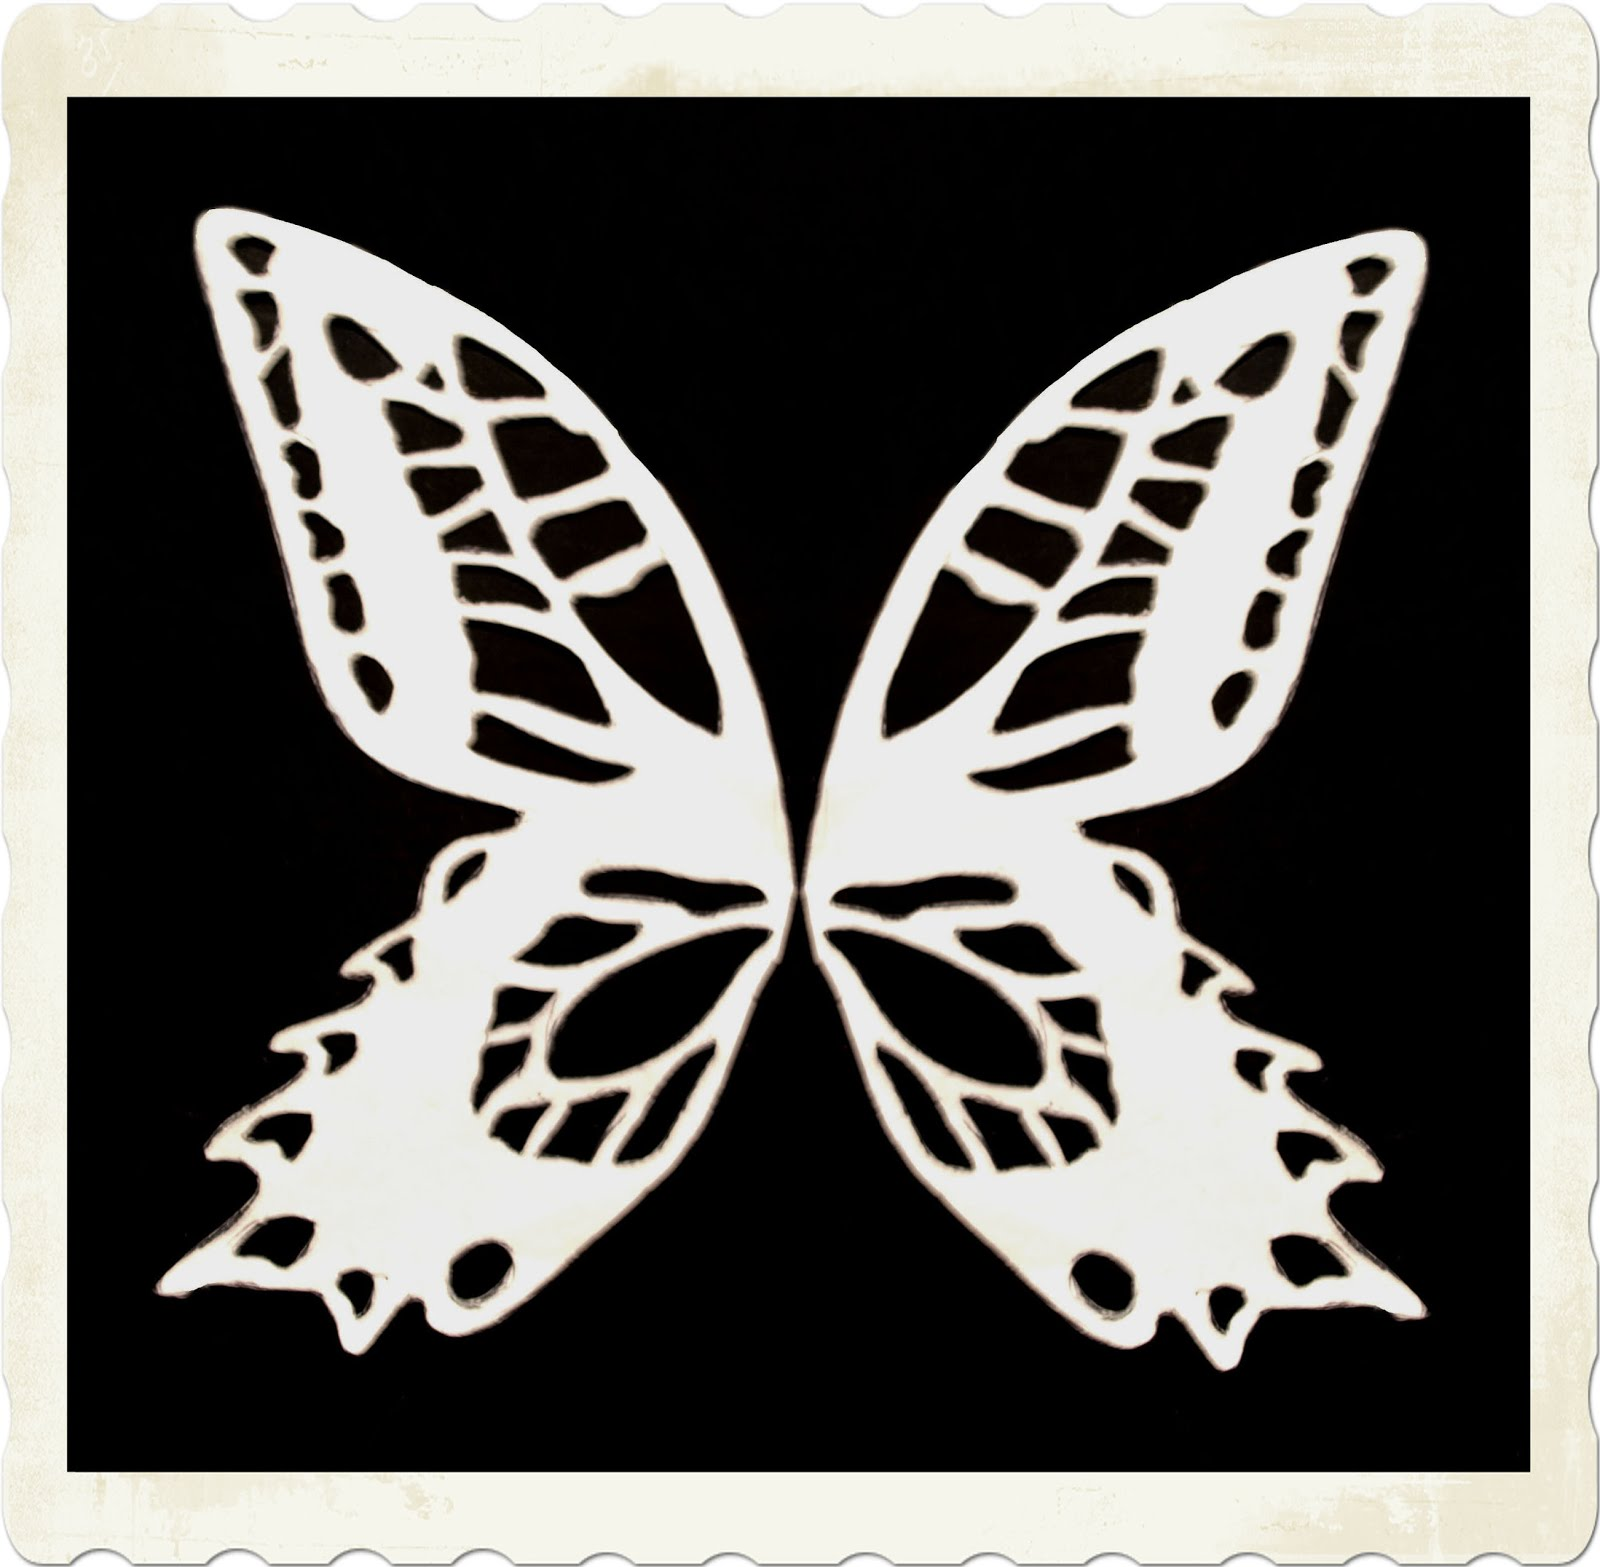 Print Out The White Butterfly Template And Scale It - If Necessary - So  That Each Side Is About As Long As Your Foot But No Longer.